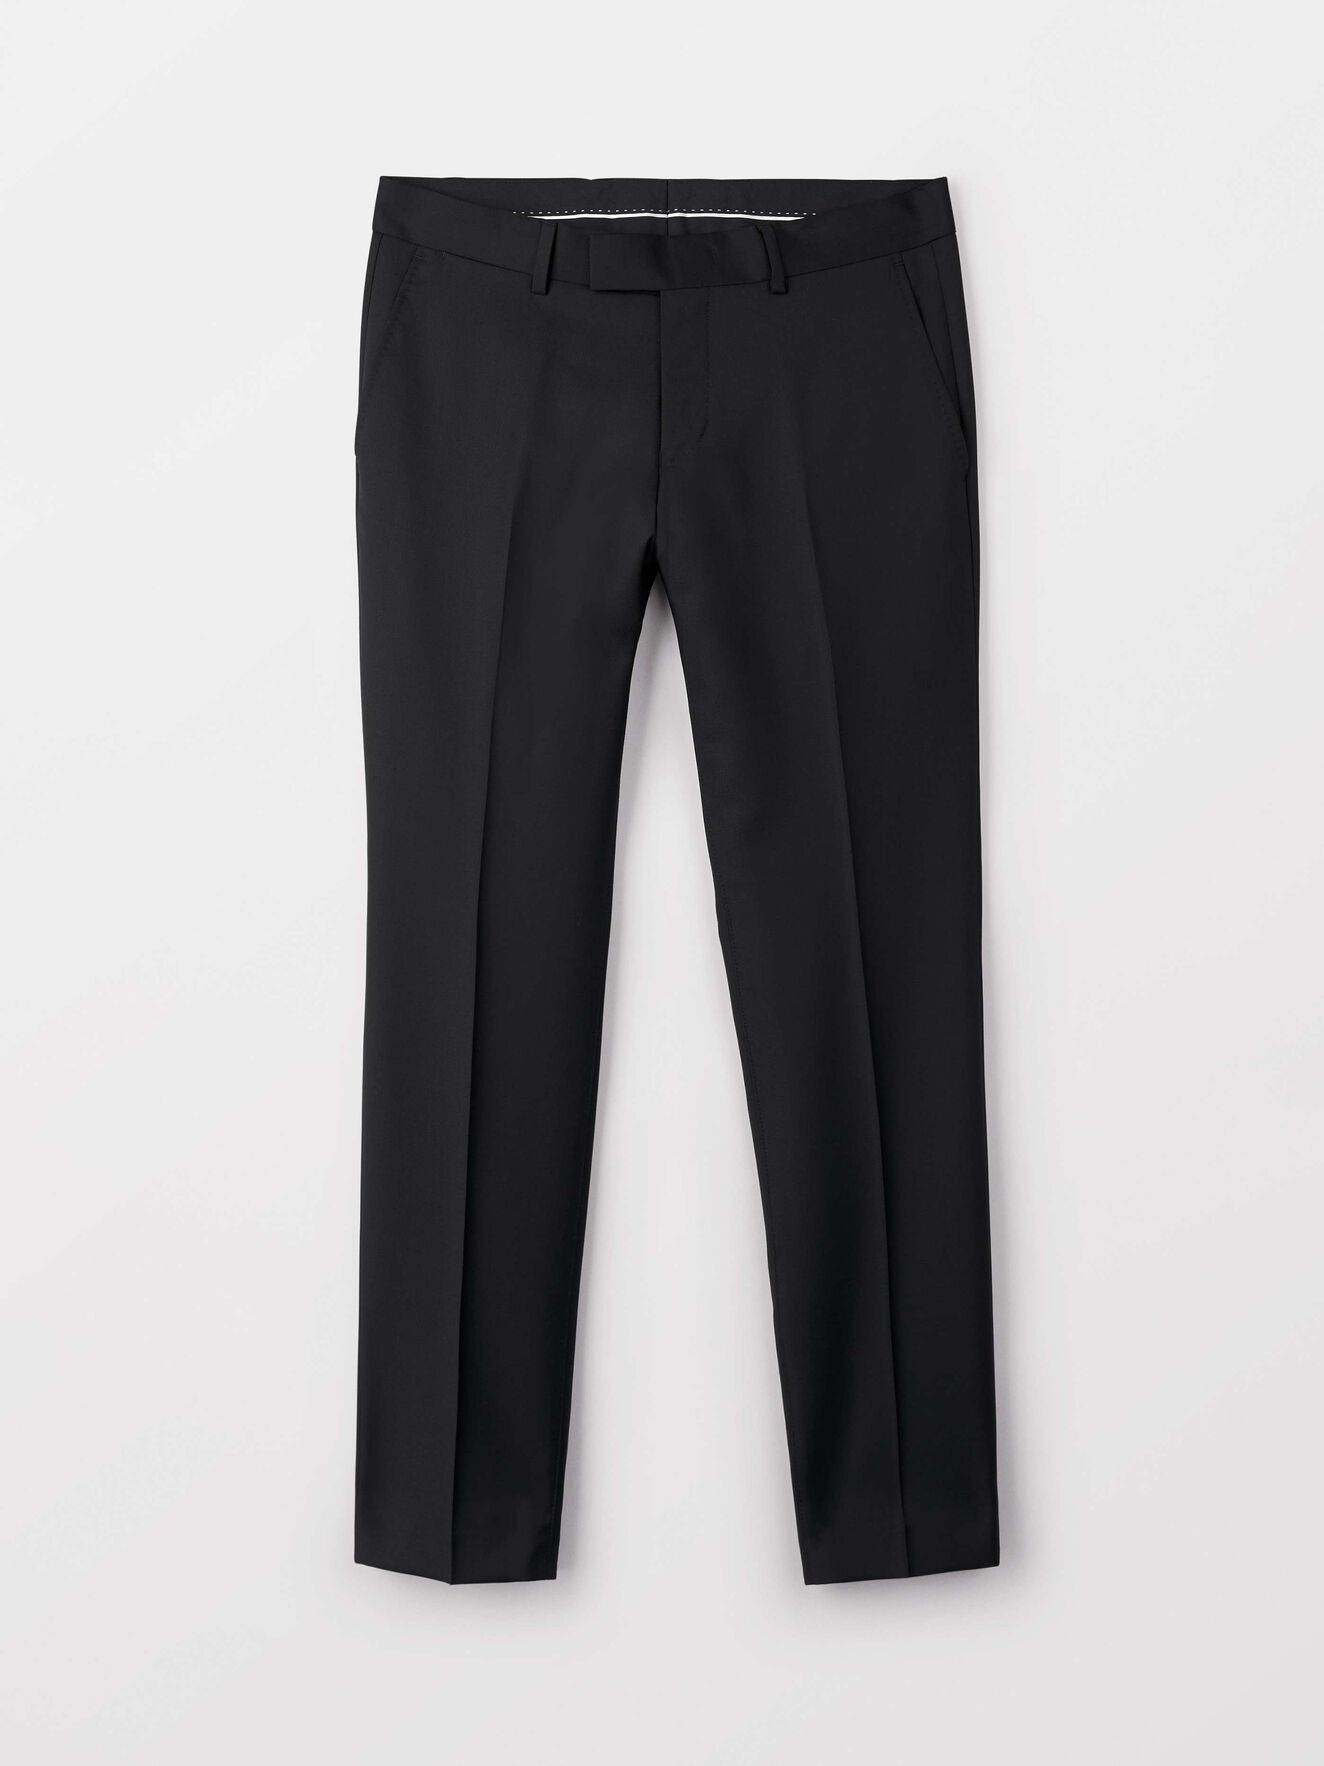 Tain Trousers (Short Size) in Black from Tiger of Sweden